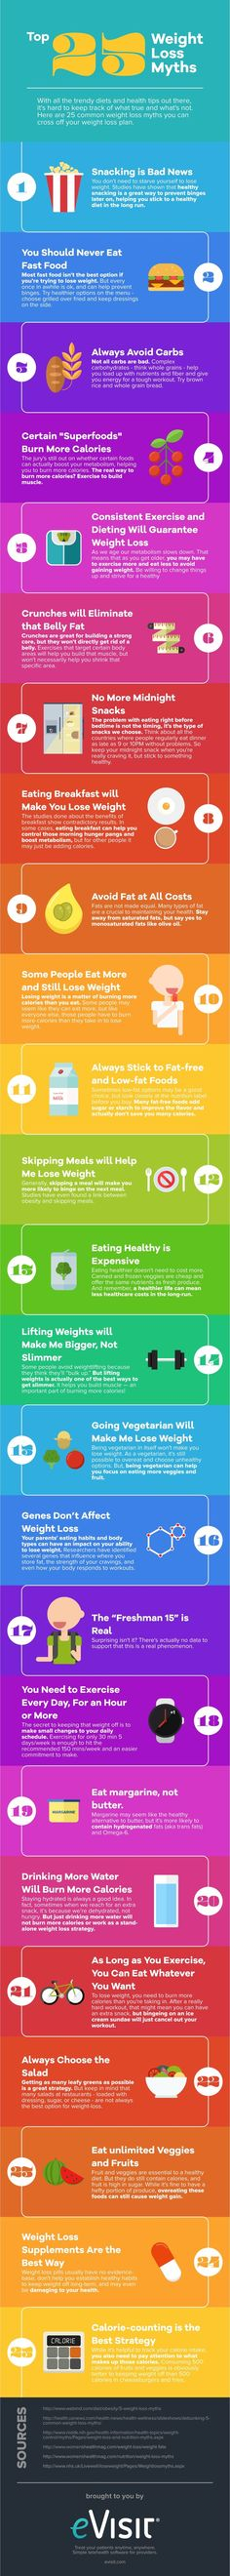 weight loss programs for men, weight loss goal calculator, lose weight while breastfeeding - Top 25 Weight Loss Myths Infographic   http://evisit.com/infographic-how-to-lose-weight/